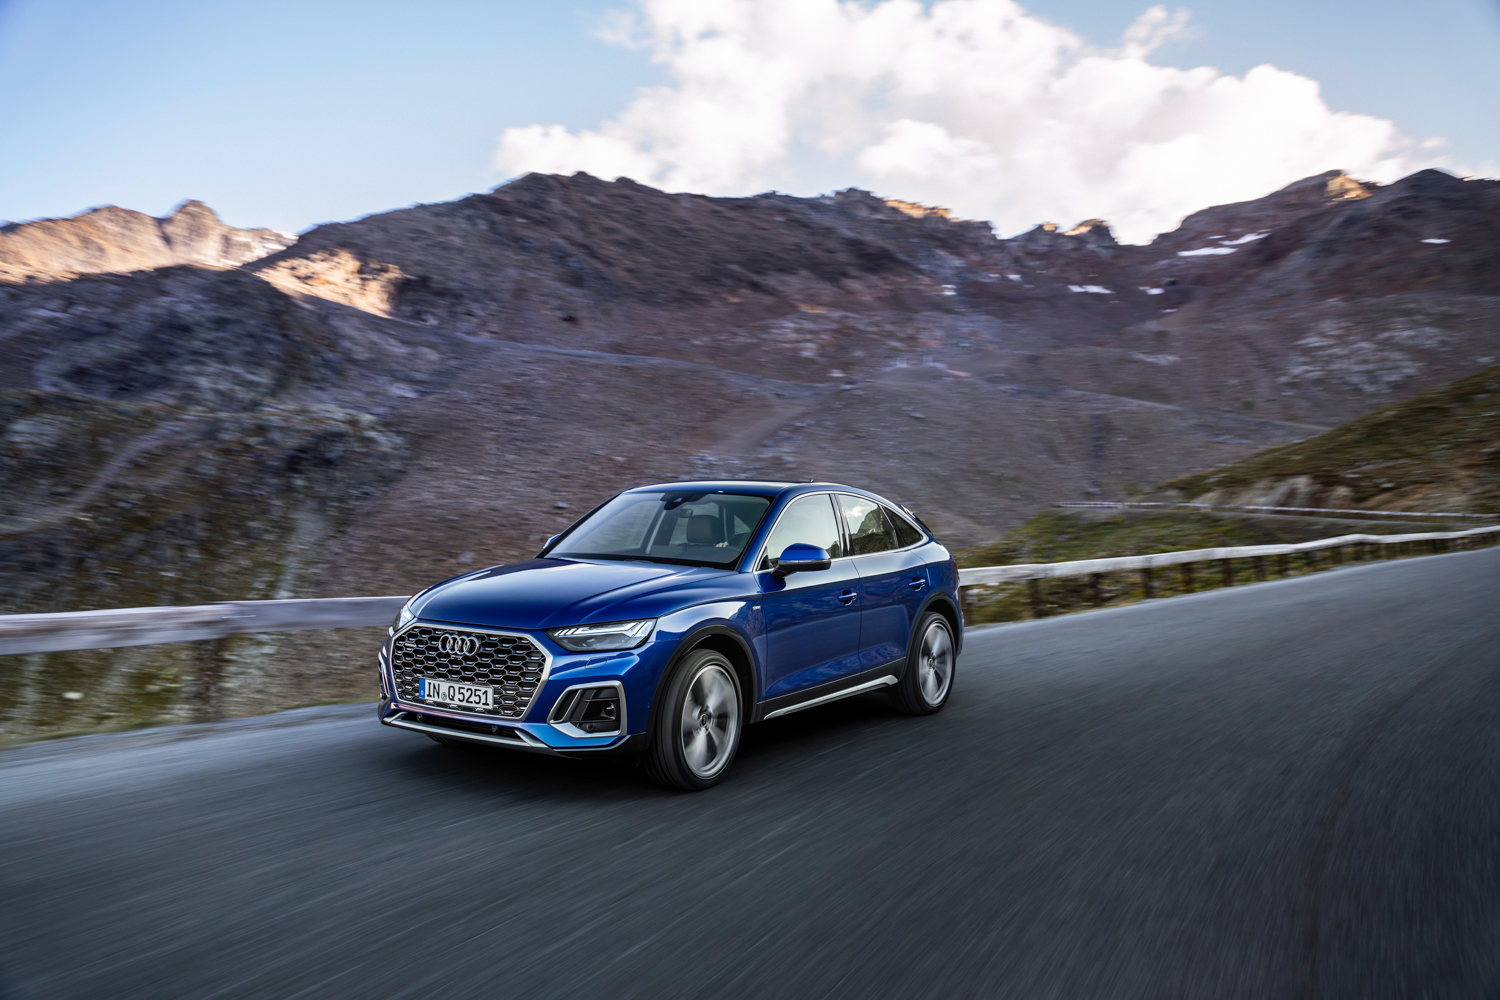 Car News | Audi shows off new Q5 Sportback | CompleteCar.ie